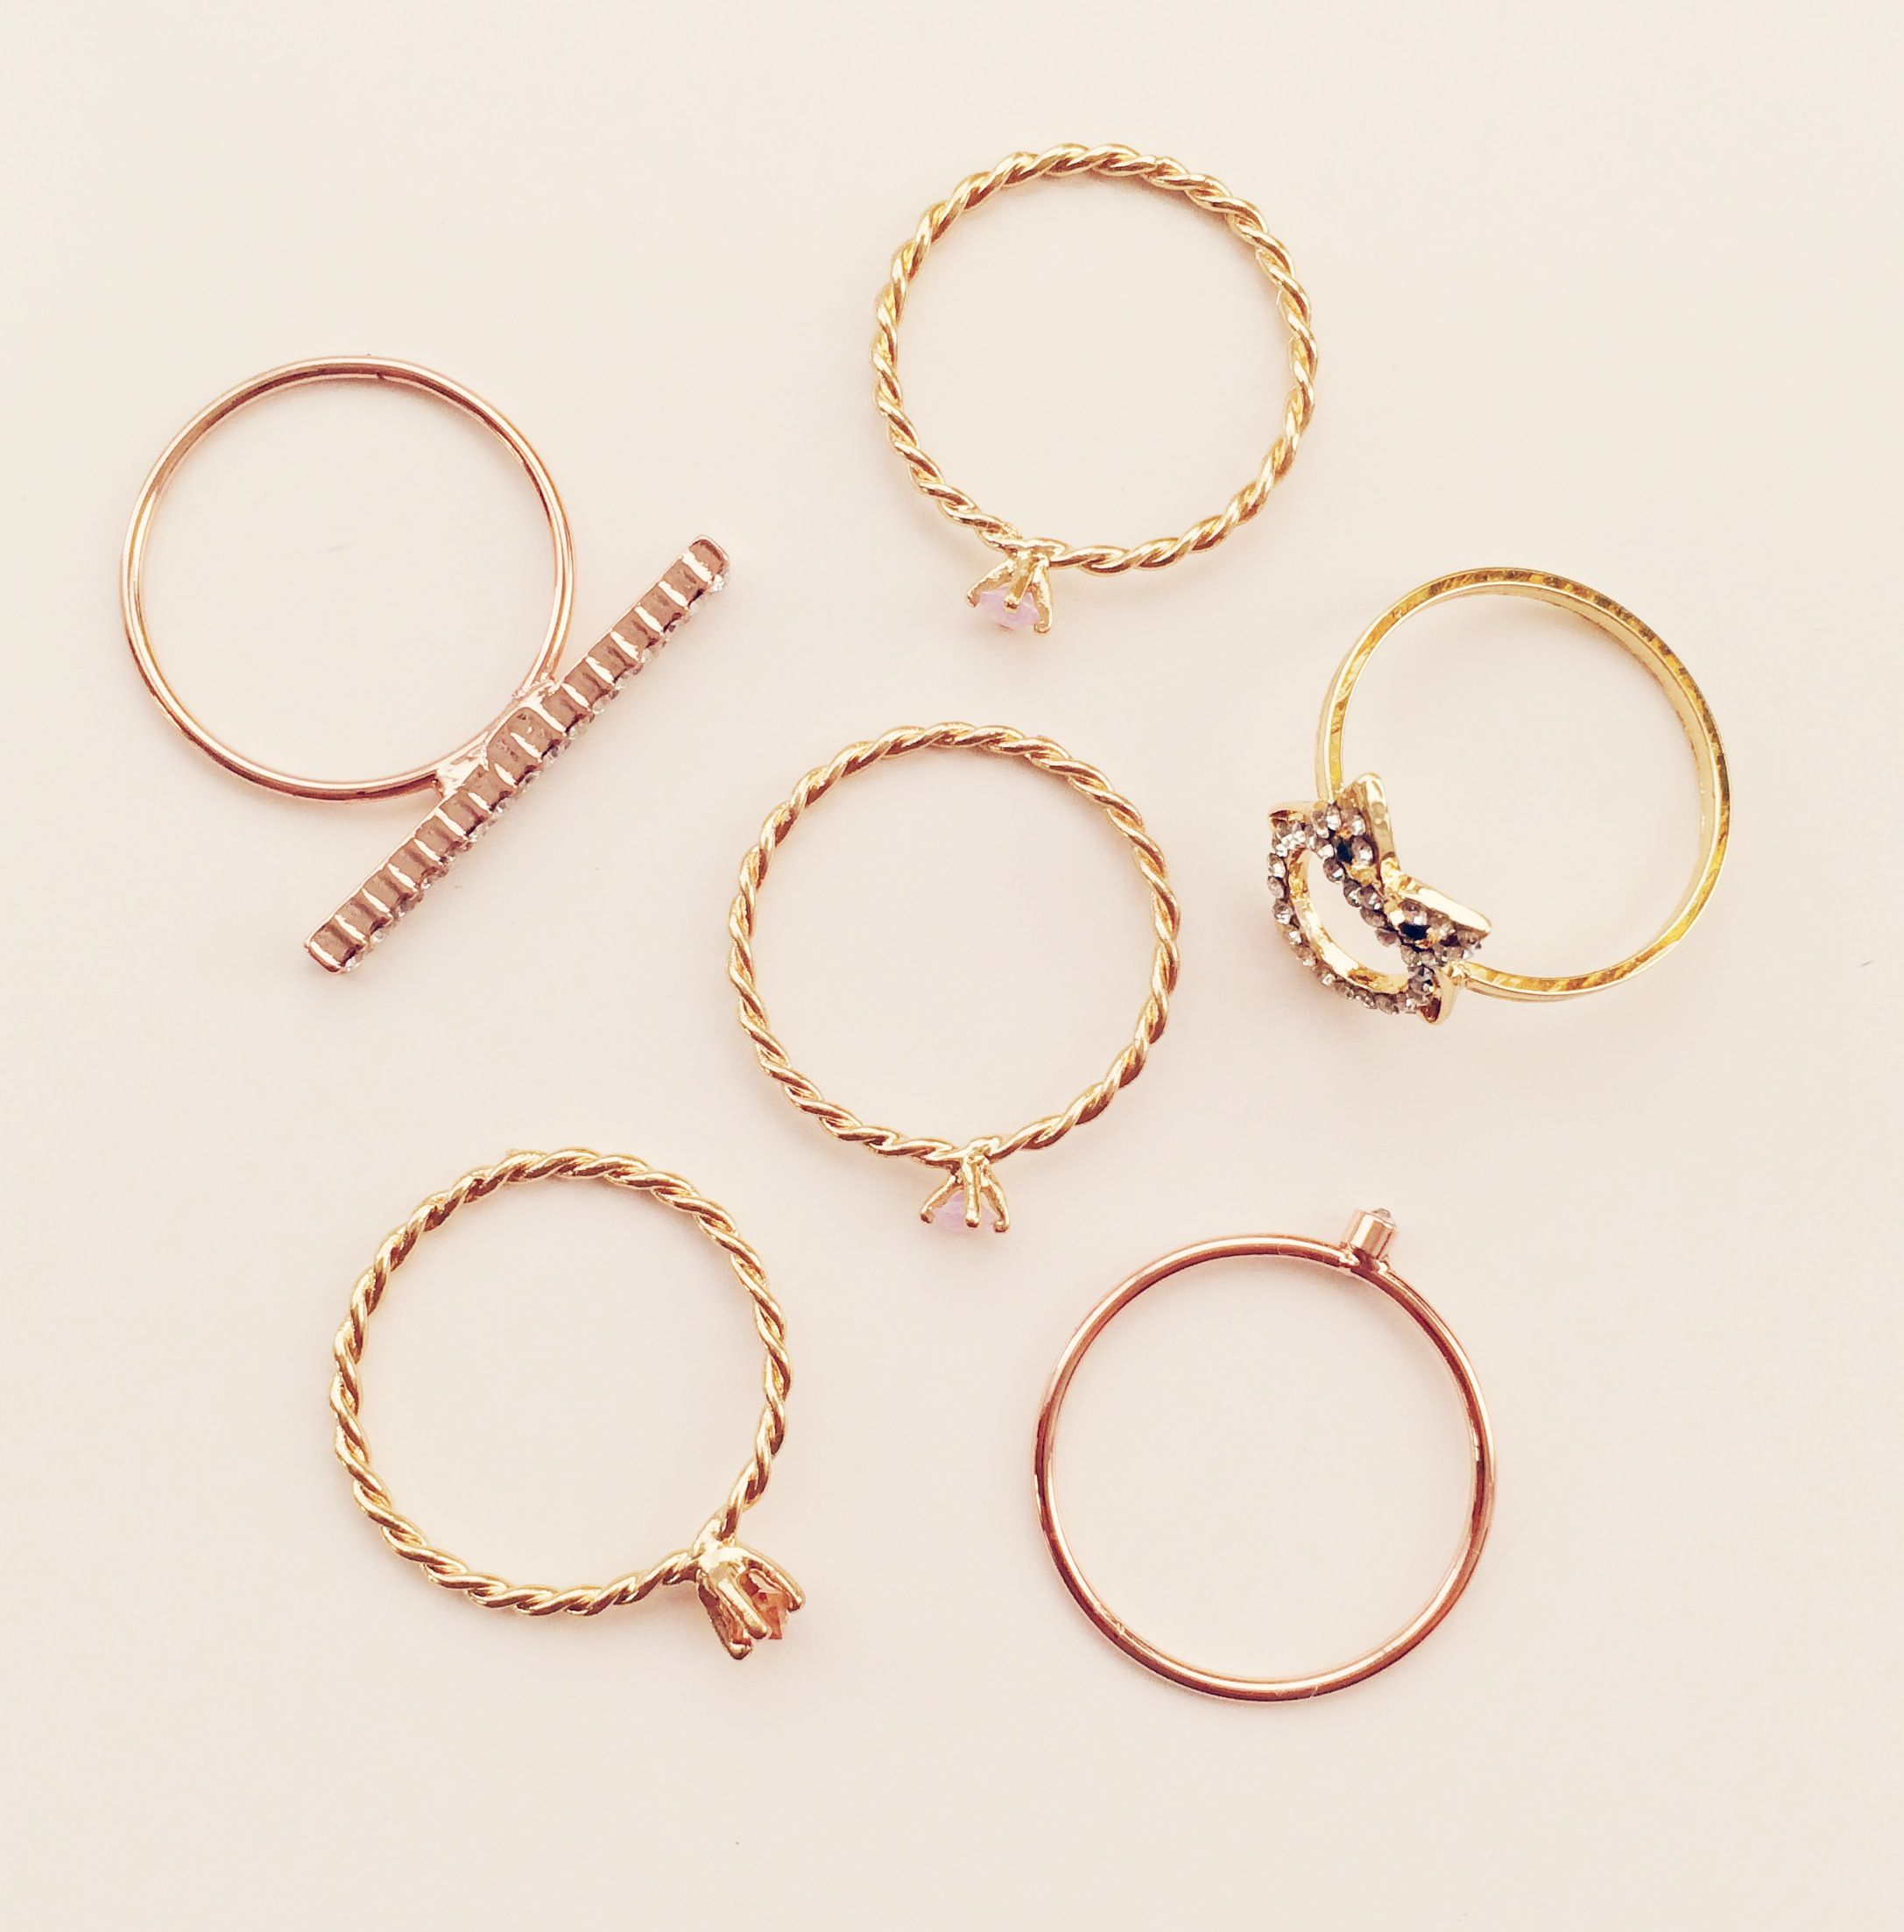 Kohls Jewelry Box Simple Lc Lauren Conrad For Kohl's Stackable Rings $780  My Style And